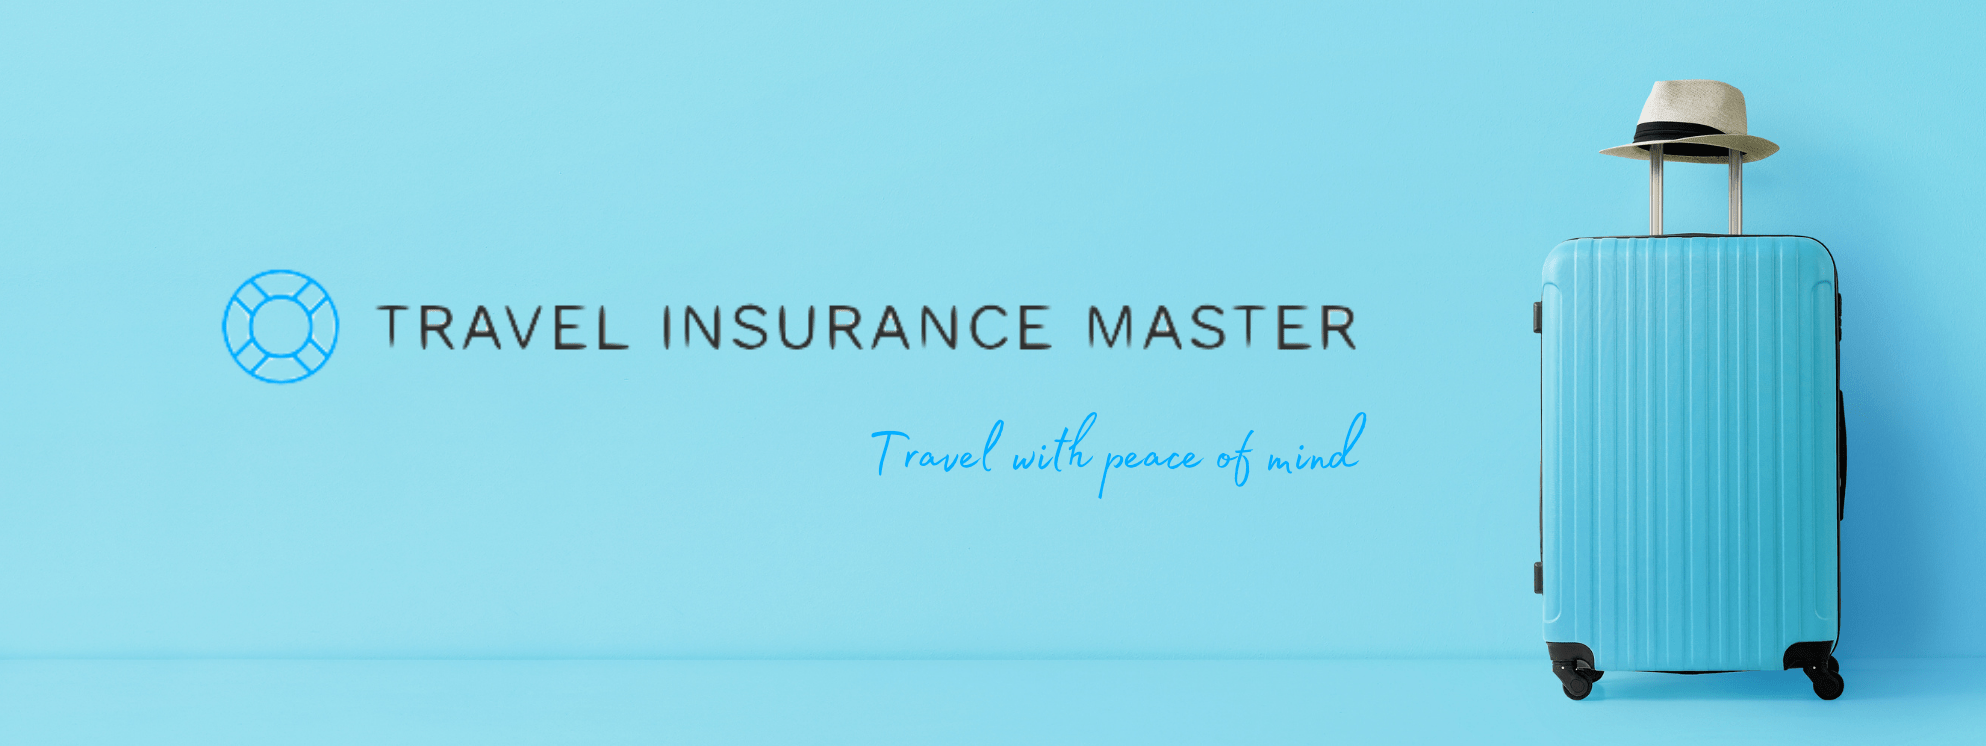 quote for travel insurance